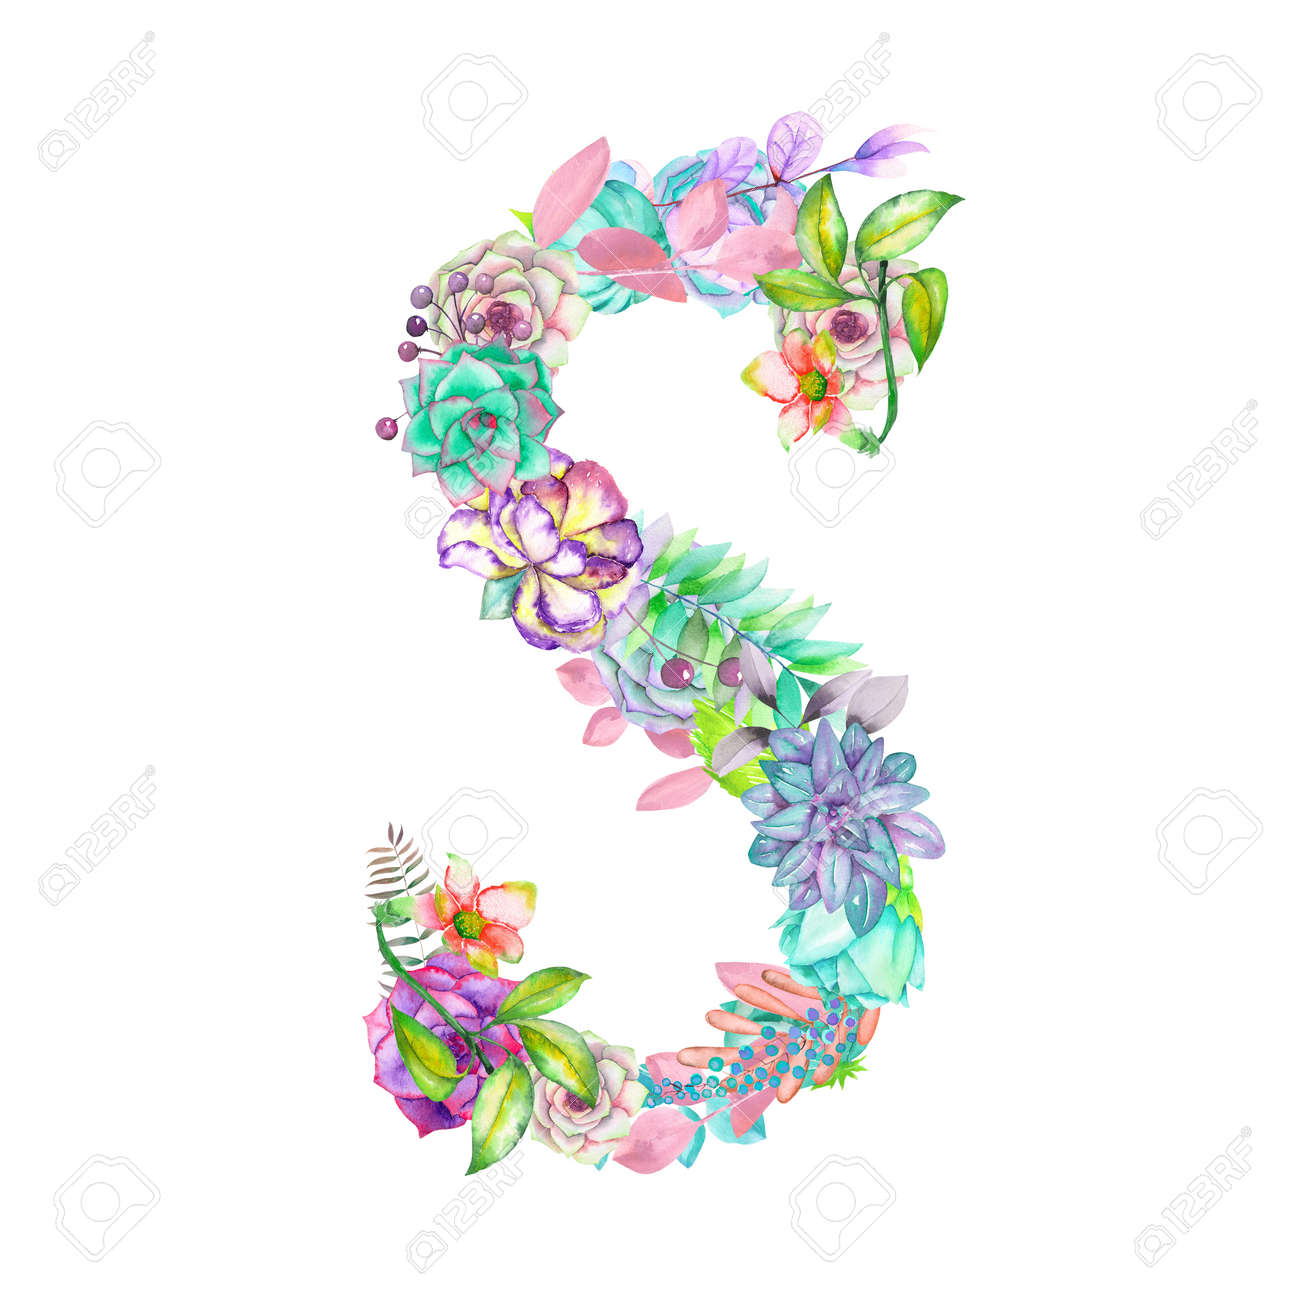 Capital Letter S Of Watercolor Flowers Isolated Hand Drawn On